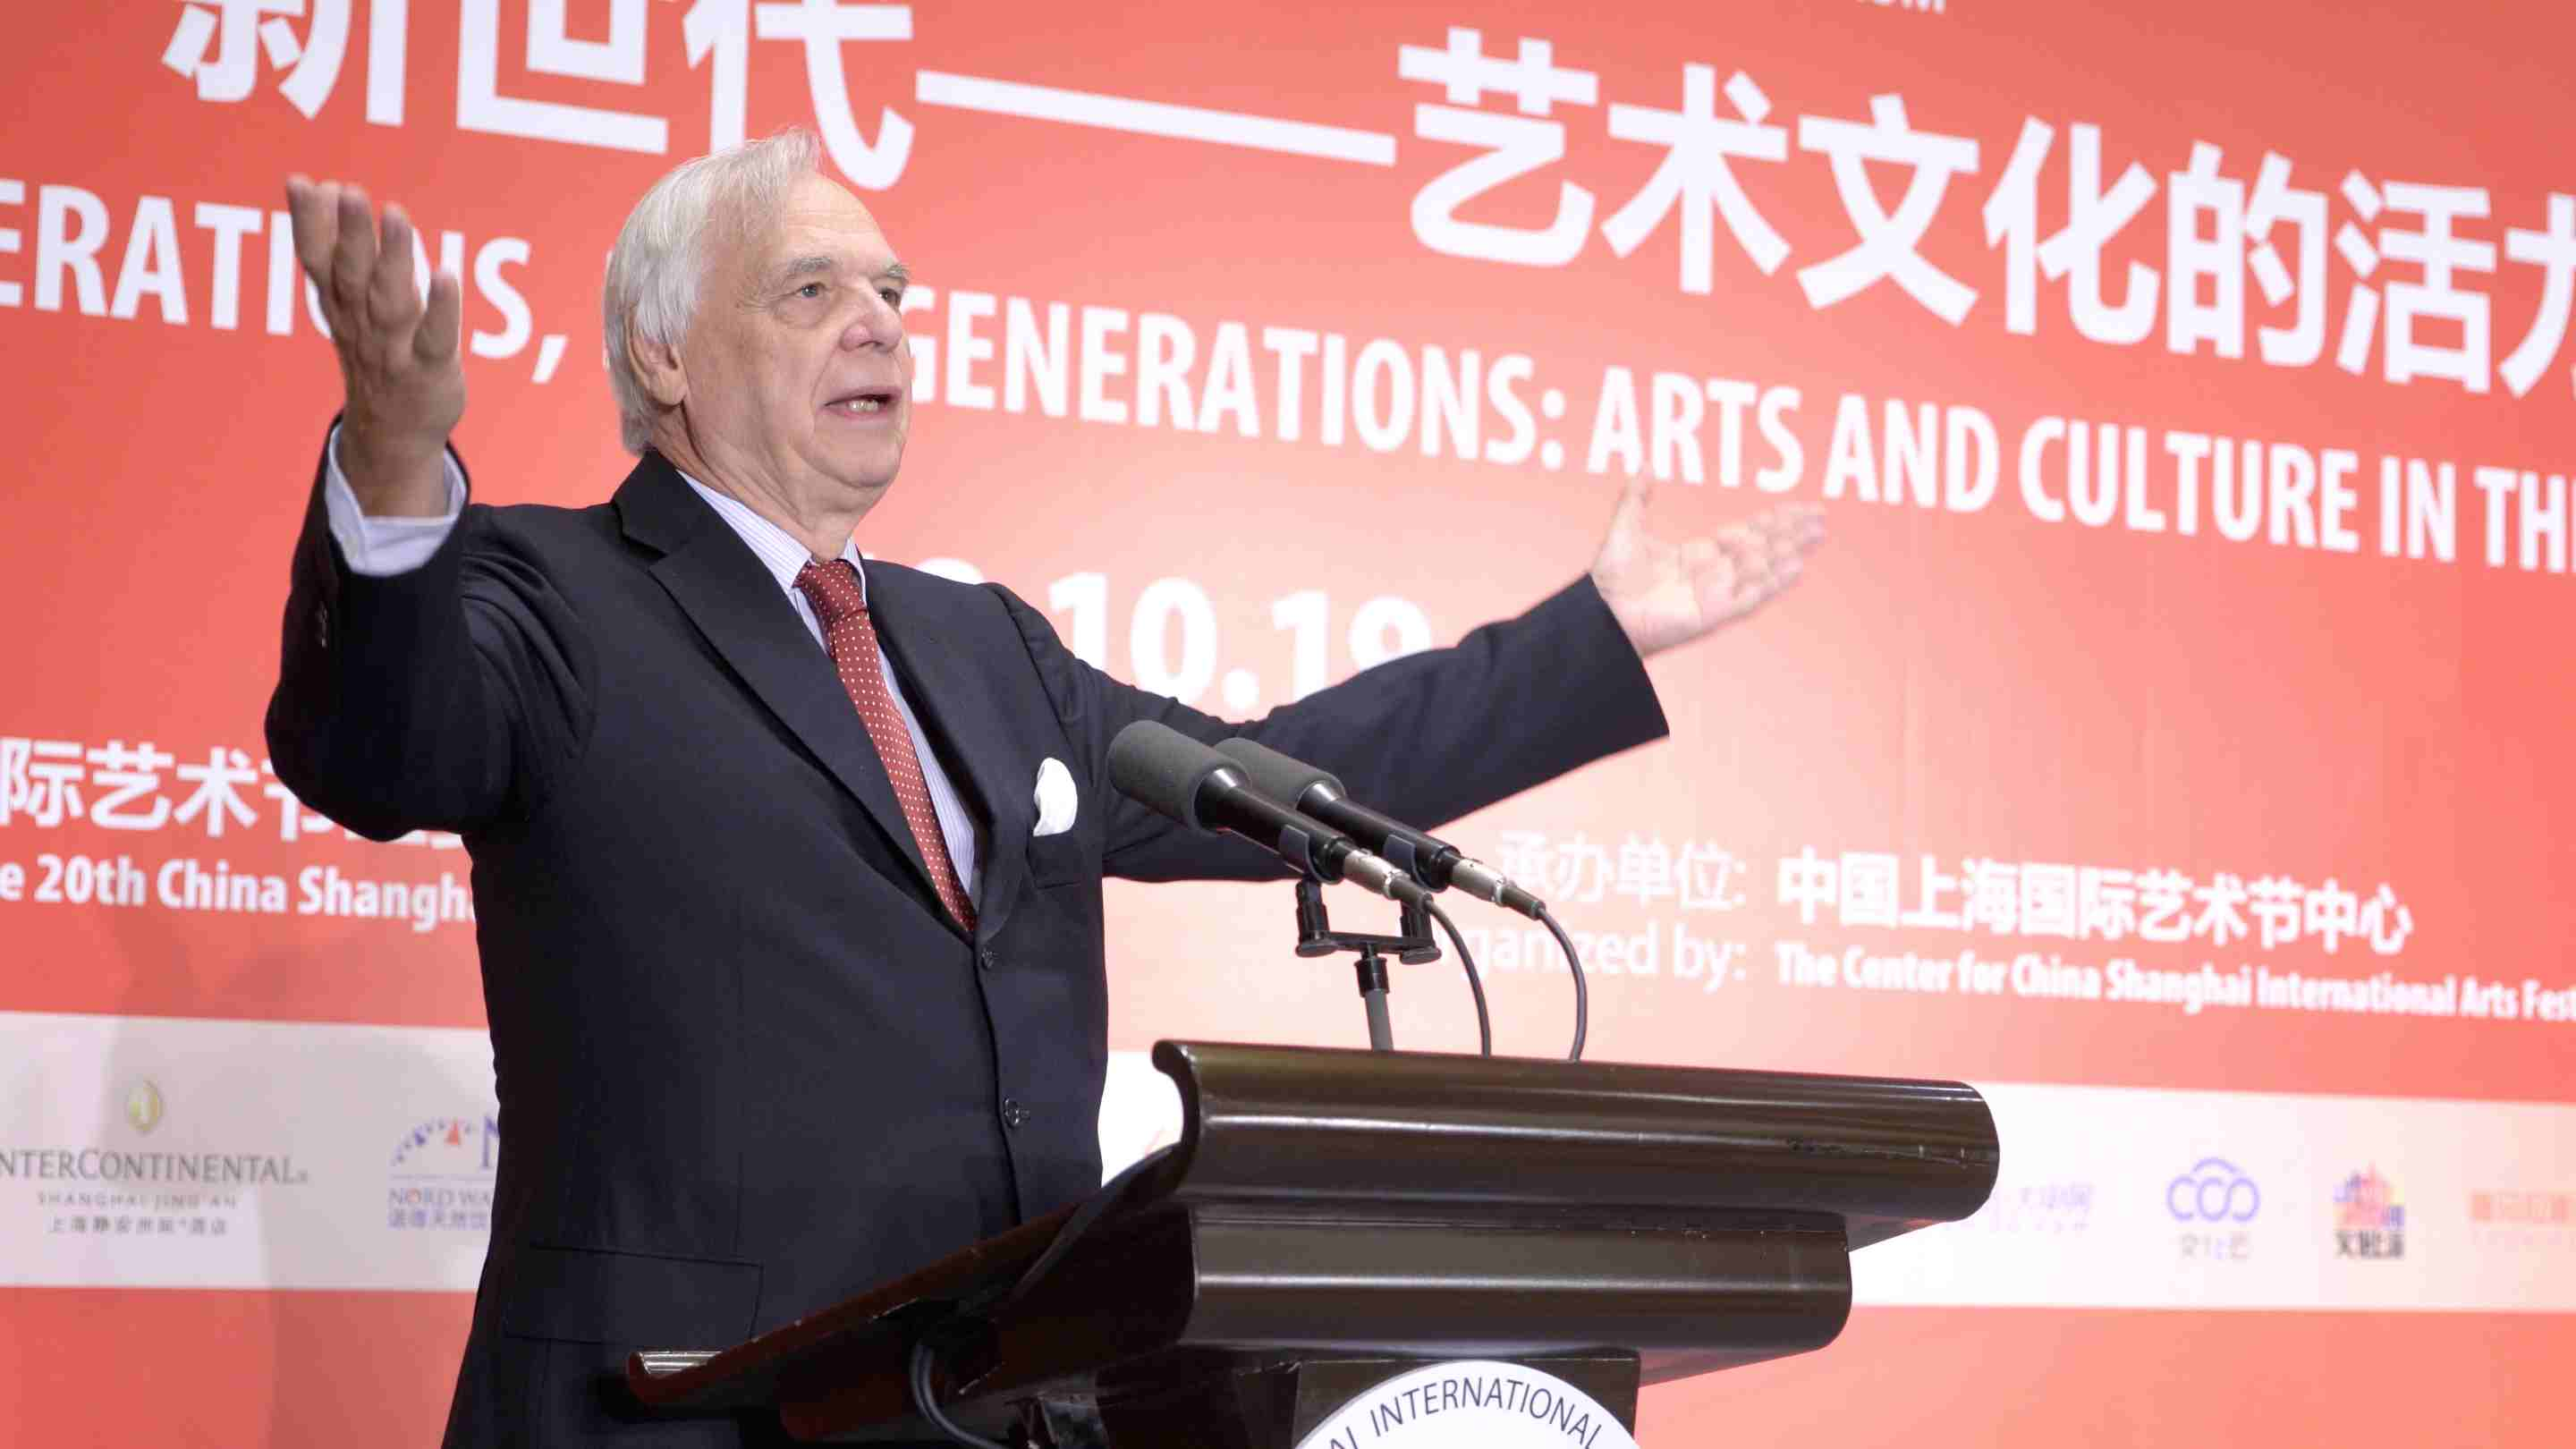 Shanghai hosts forum on the future of the arts